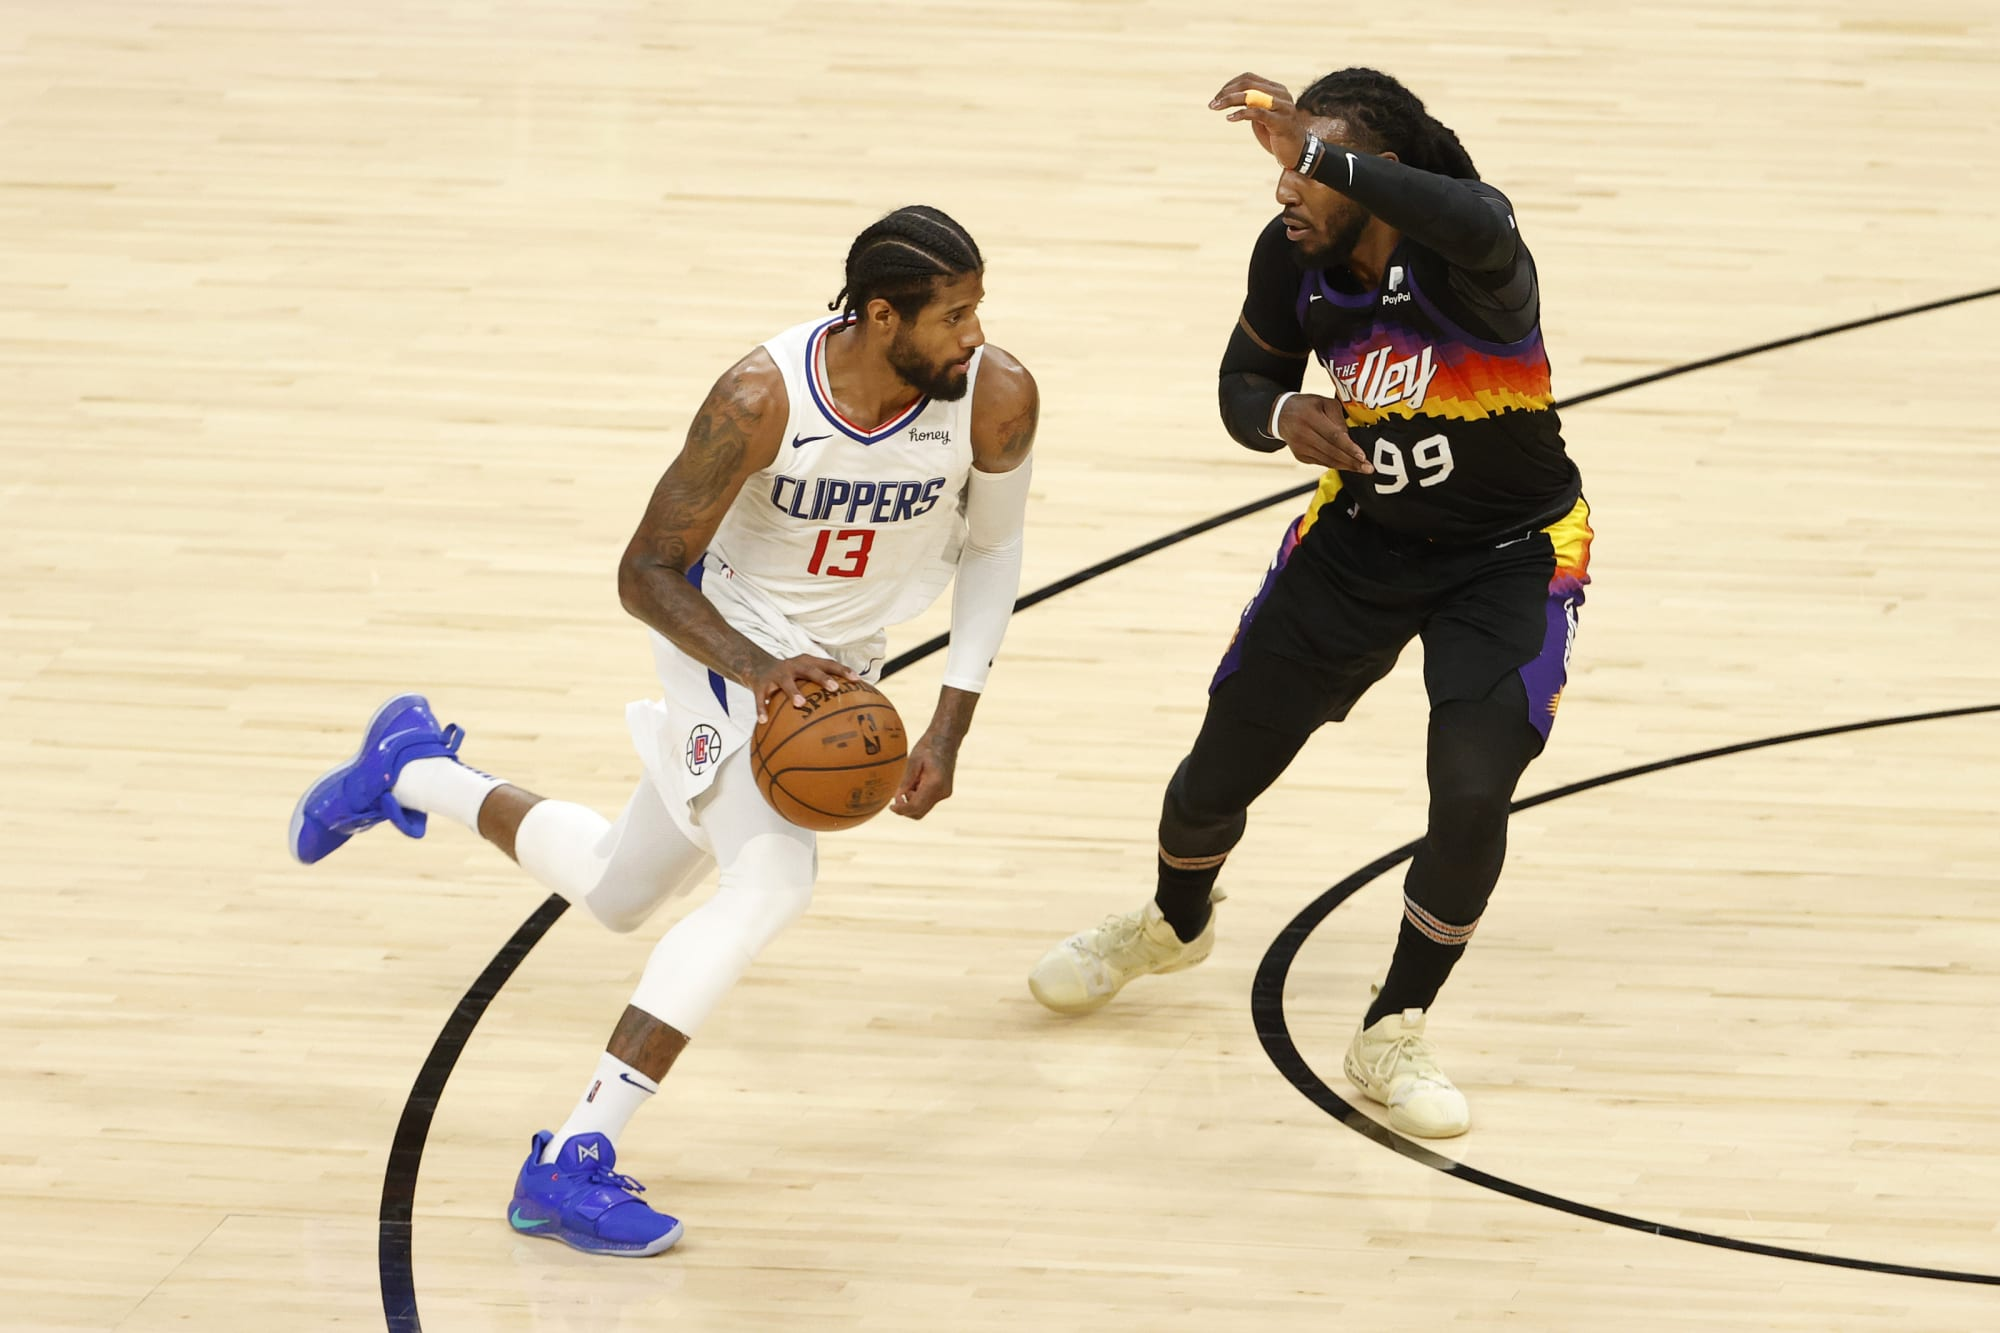 Clippers vs Suns NBA live stream reddit for NBA Playoffs Game 6